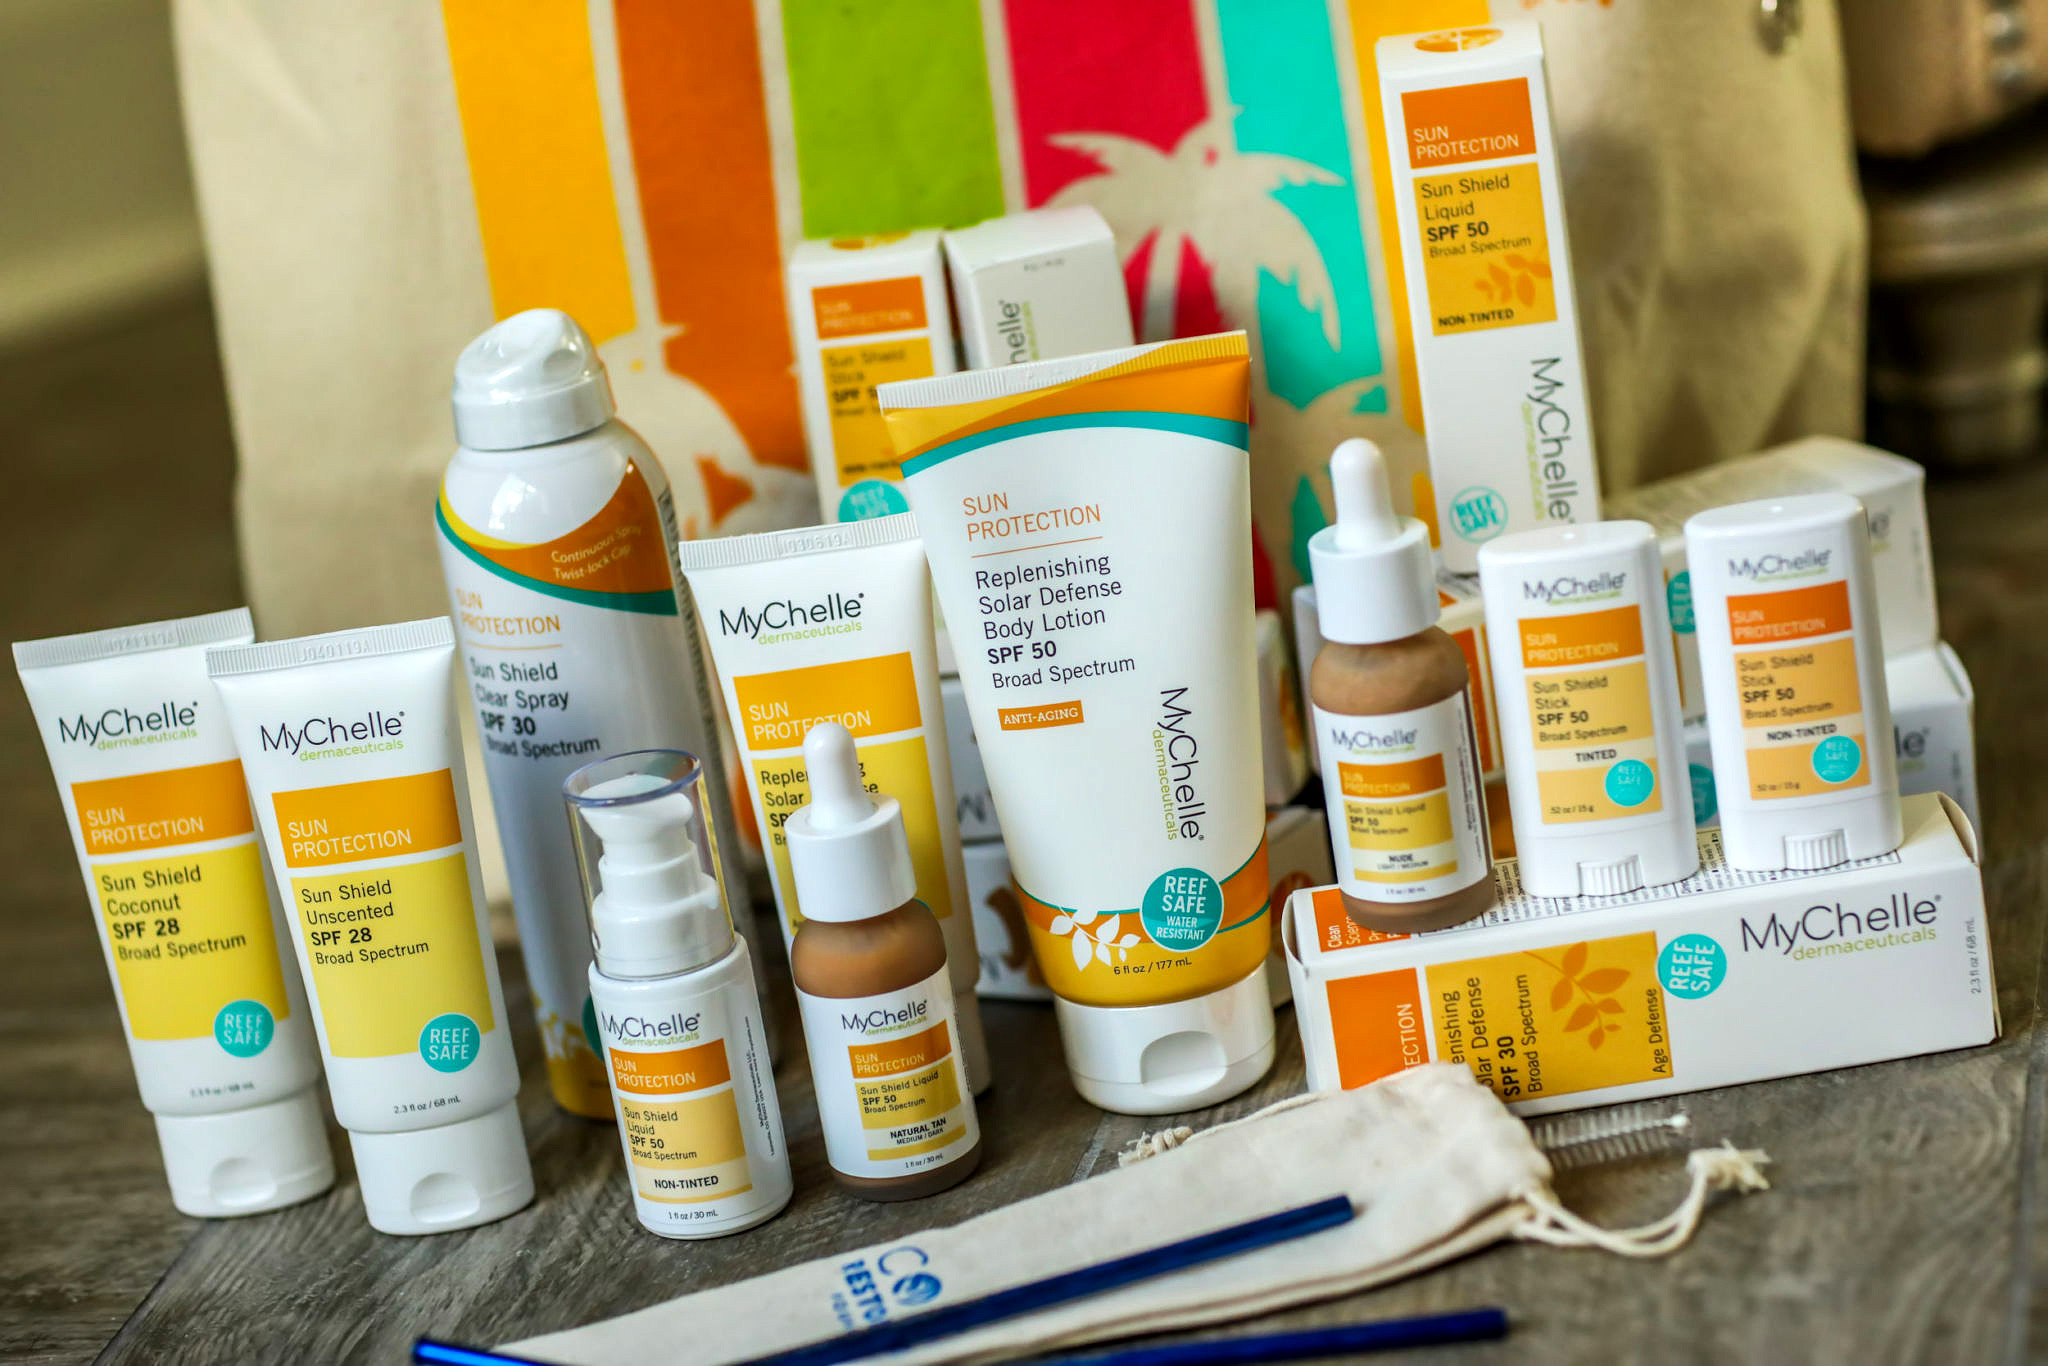 Orange-County-Fashion-Lifestyle-Blog-Marine-Life-At-Risk-Restore-Coral-Reefs-MyChelle-Dermaceuticals-Mineal-Sunscreen